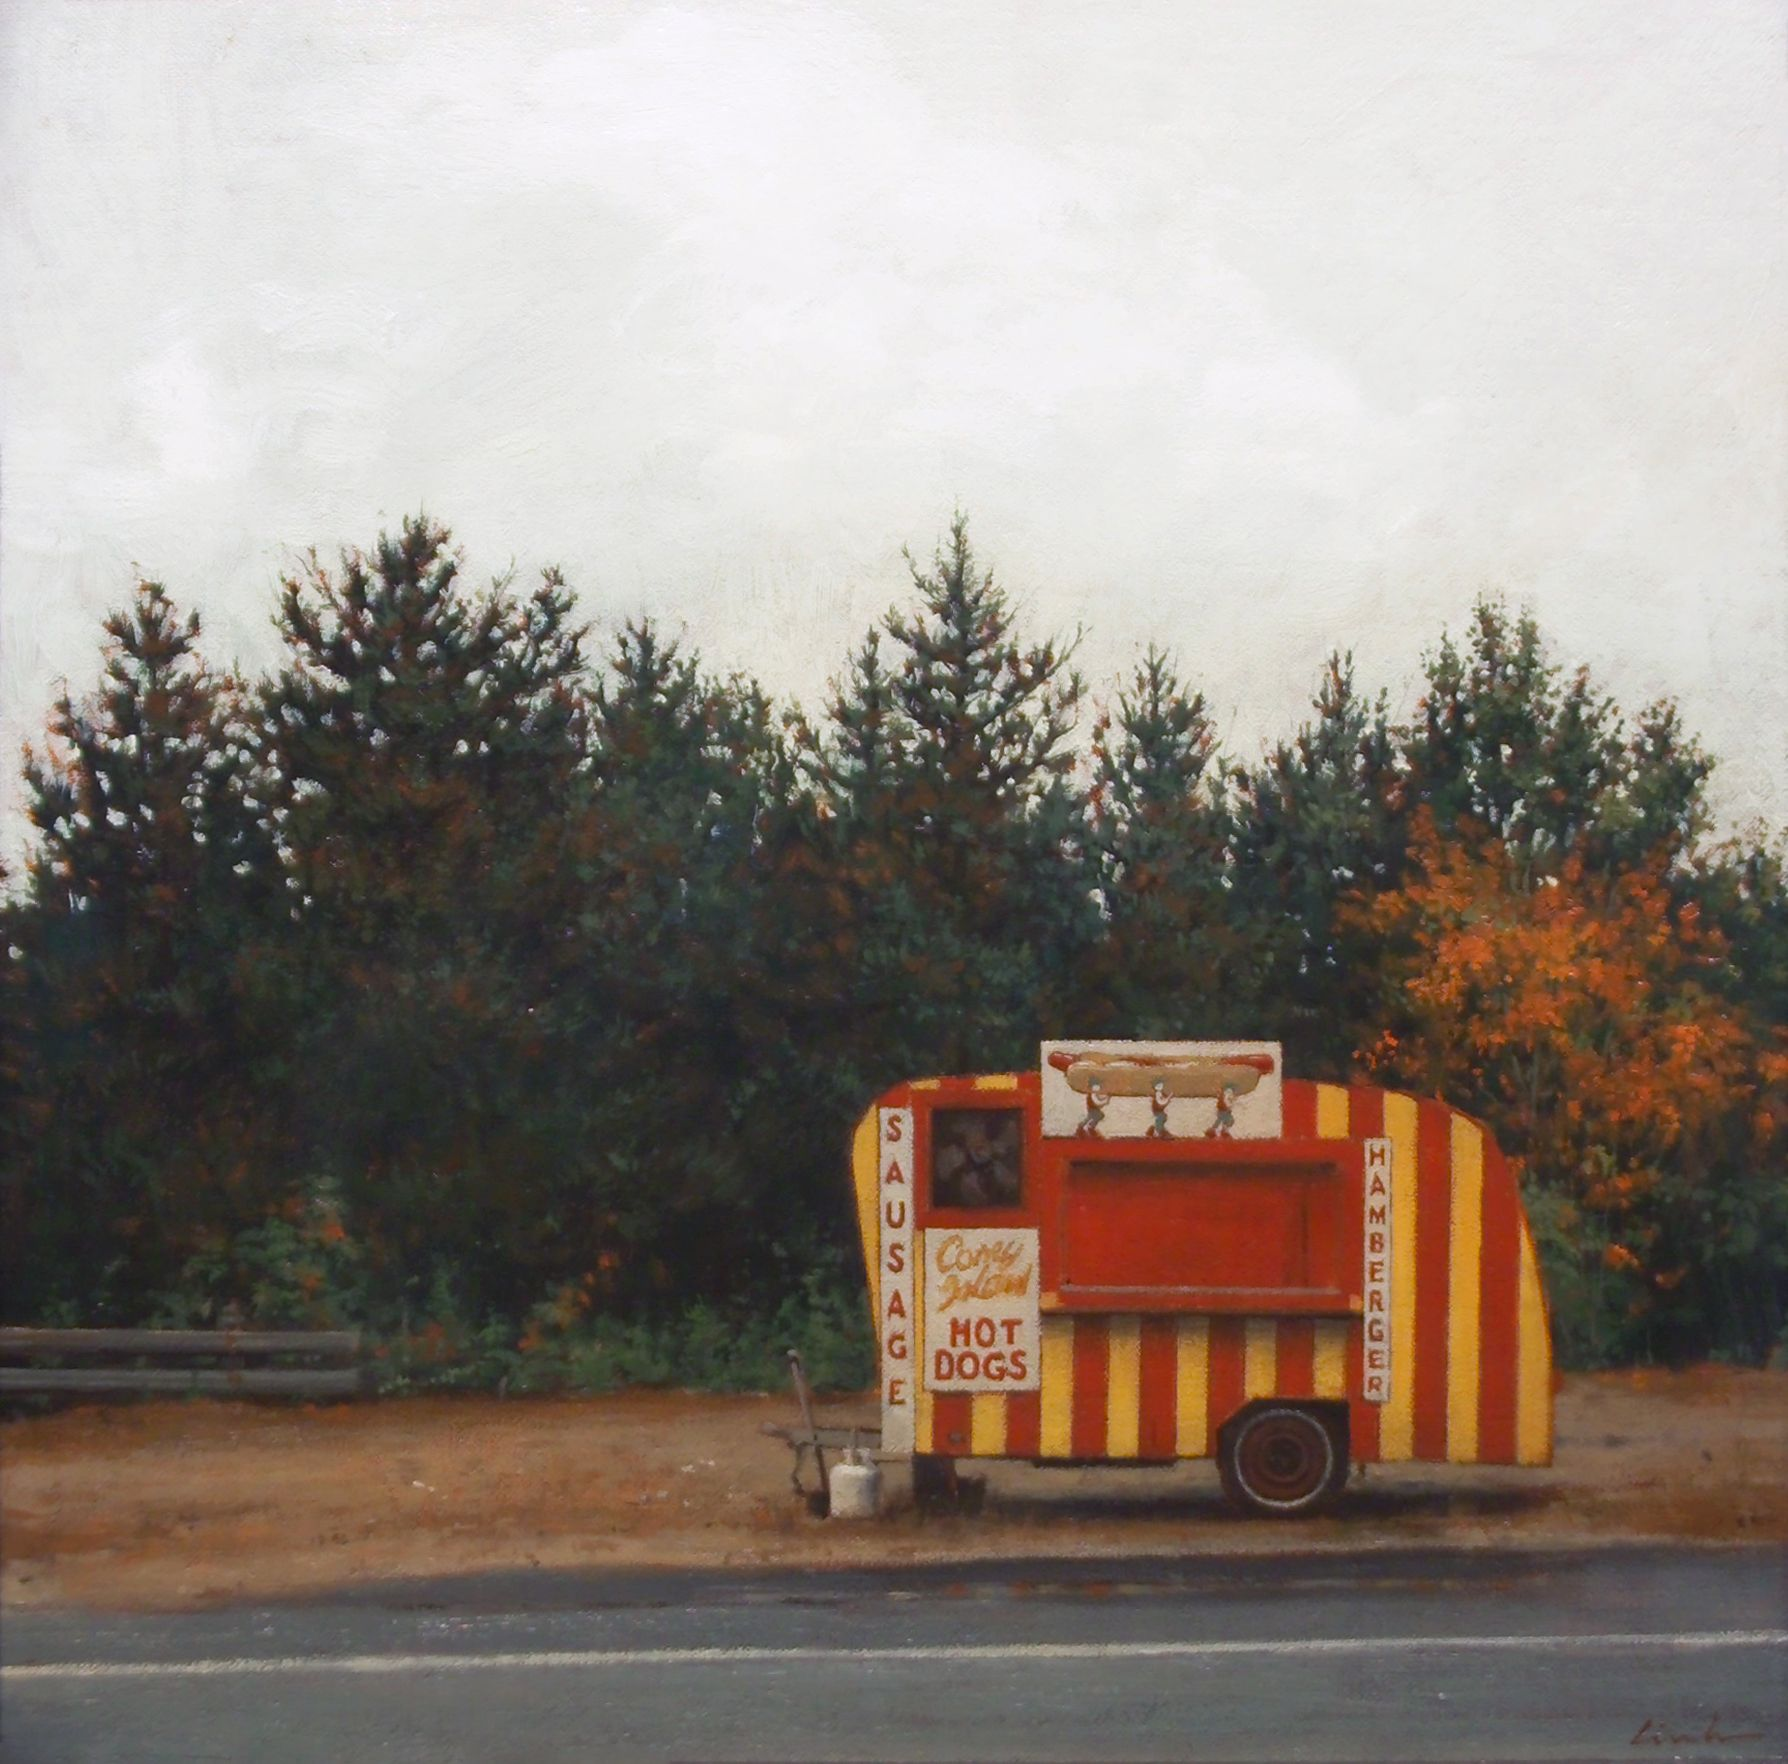 Linden Frederick, Hot Dogs (SOLD), 2007, oil on canvas board, 12 1/4 x 12 1/8 inches